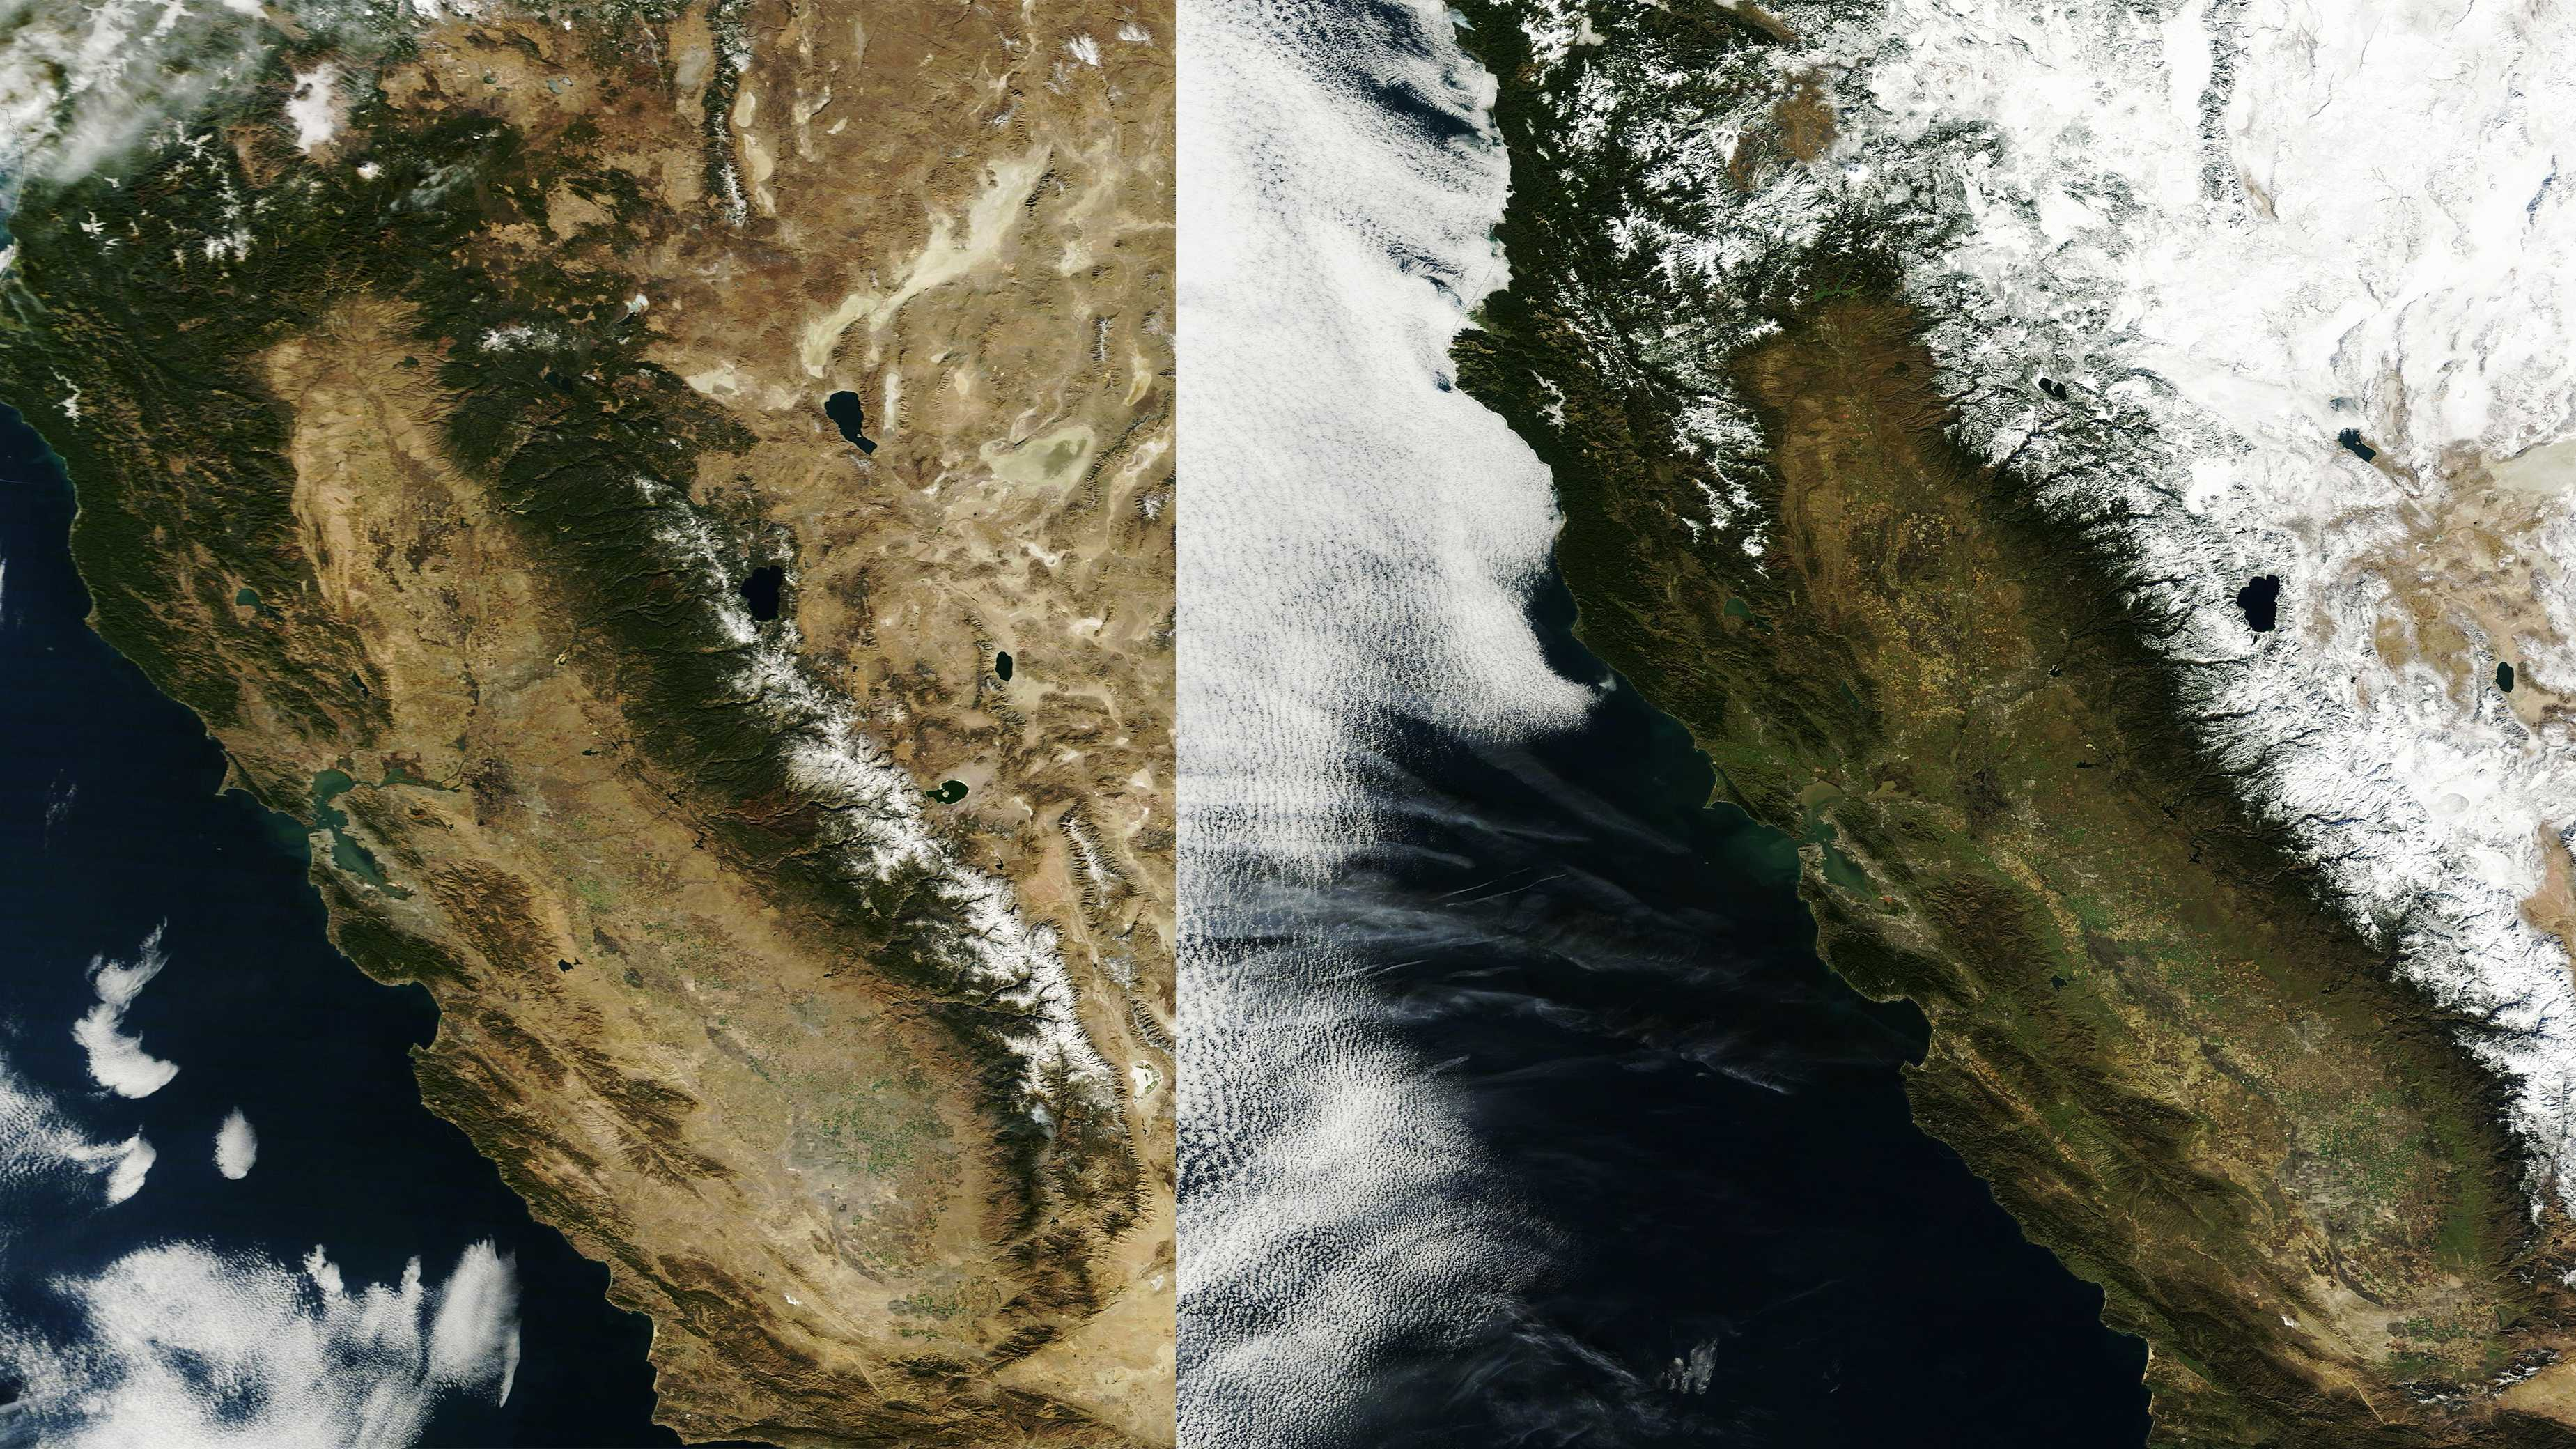 California is seen from space in January 2014 on the left, and in January 2013 on the right.